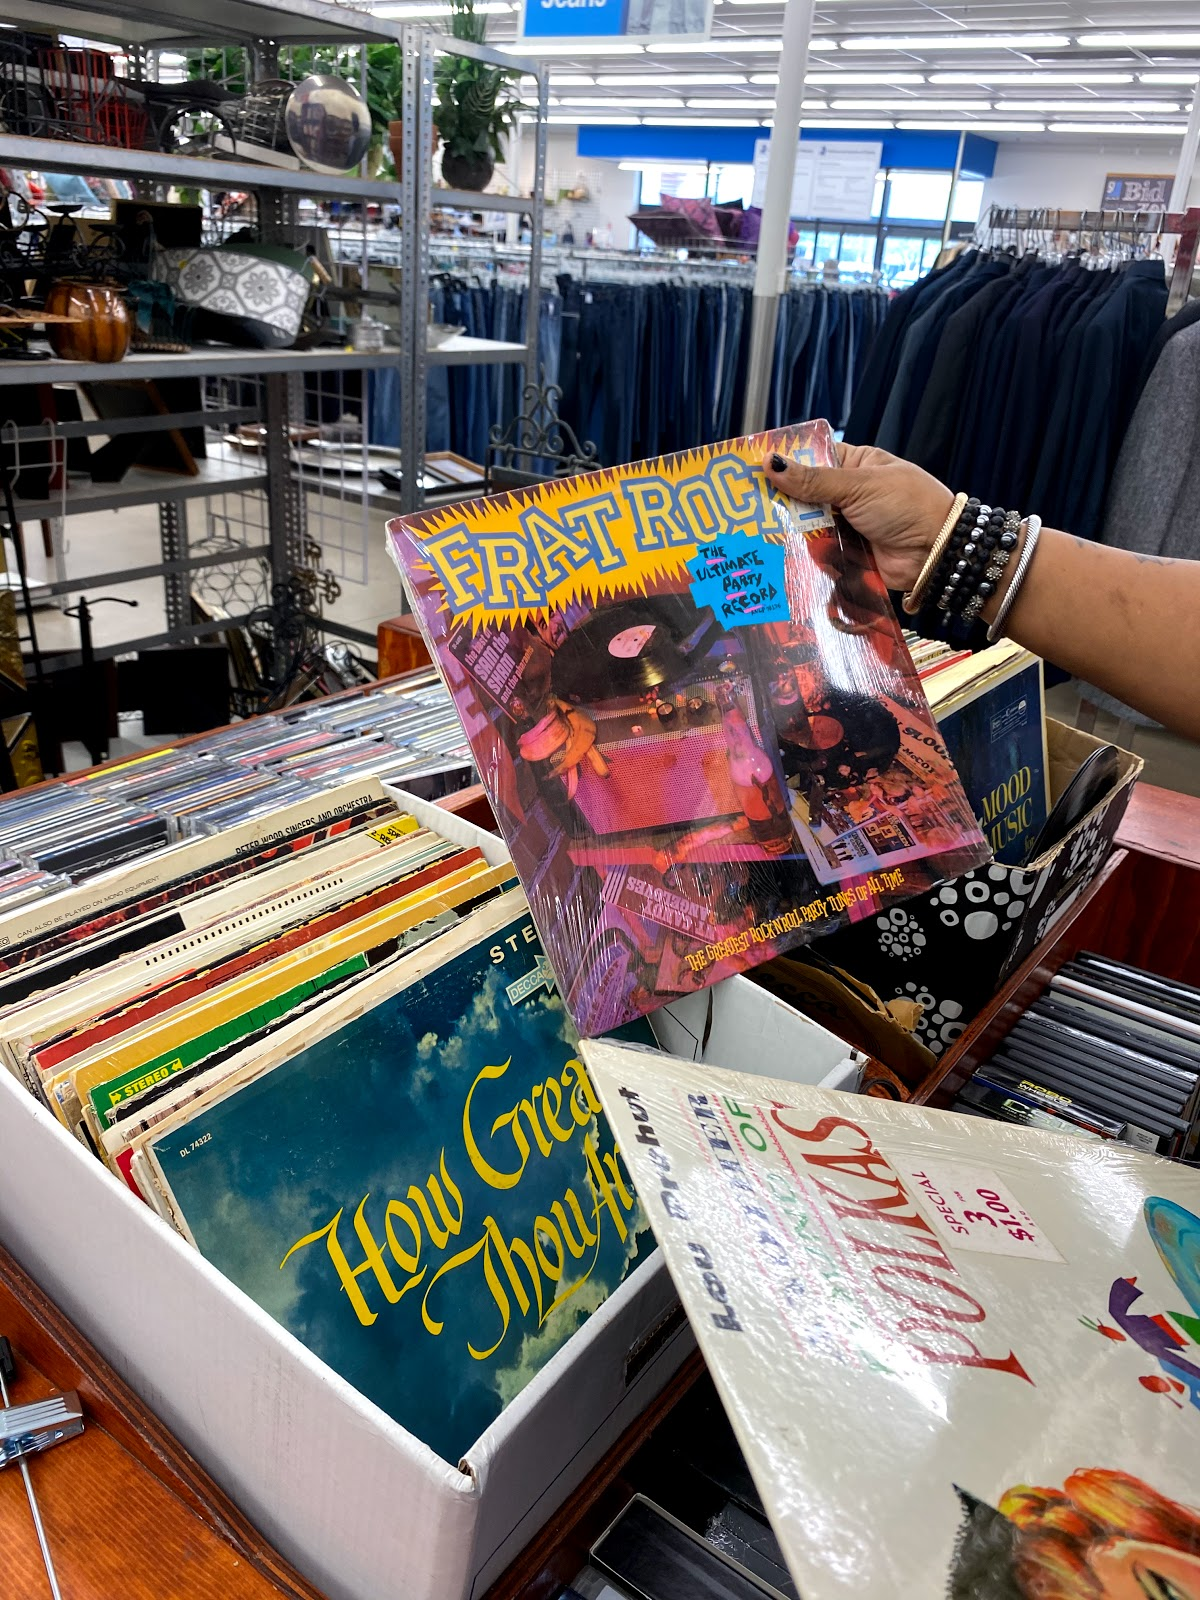 Tangie Bell buying used vinyl records from the thrift store